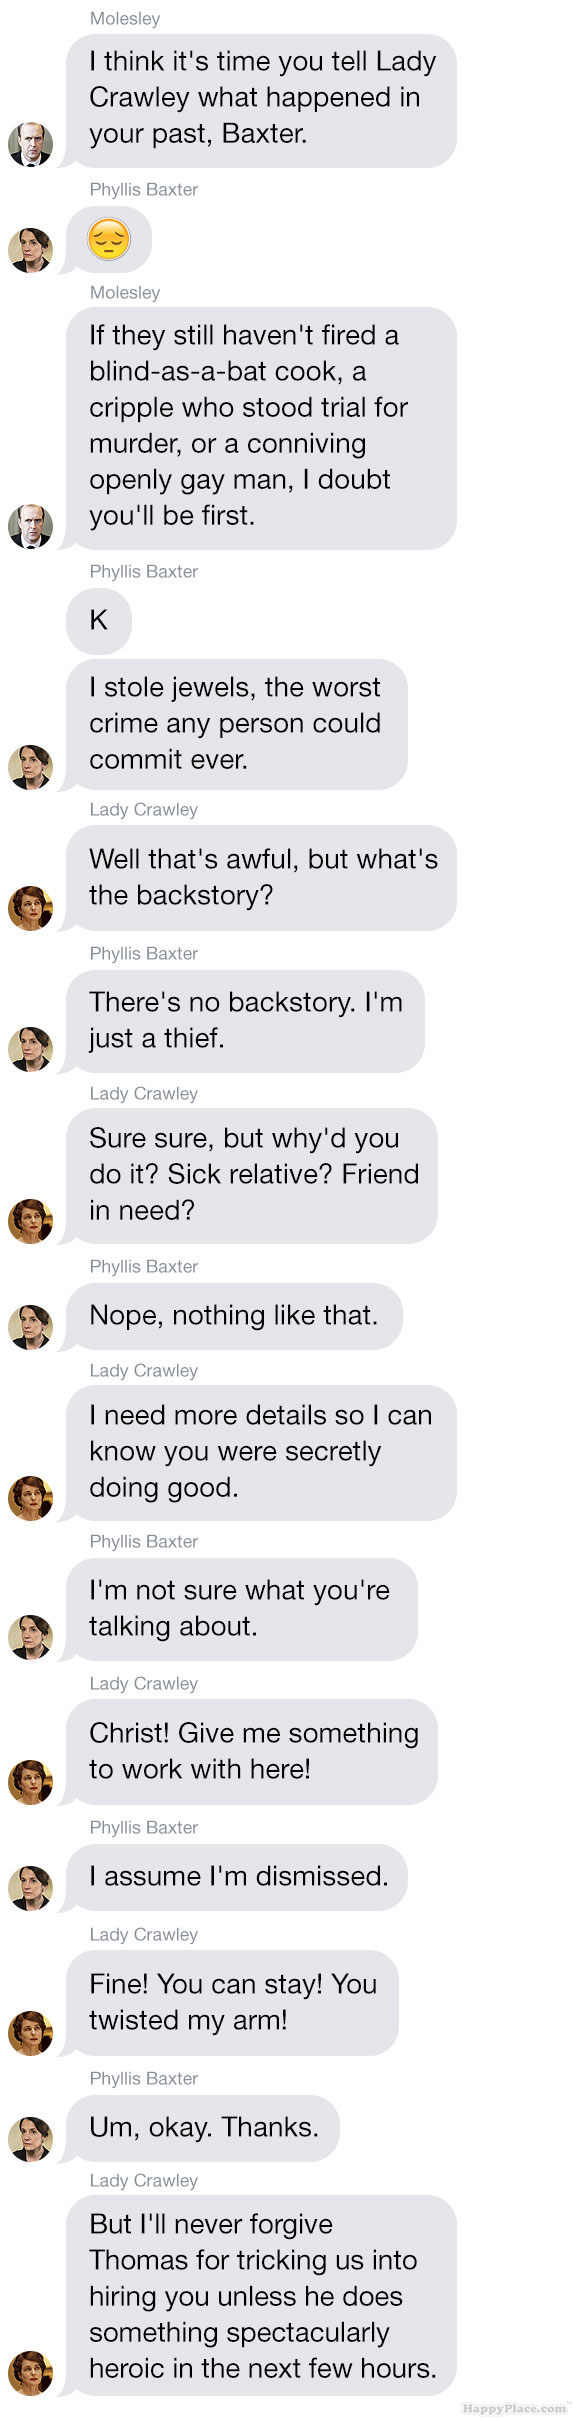 If the season premiere of Downton Abbey took place entirely via group text. | Downton Abbey | Happy Place